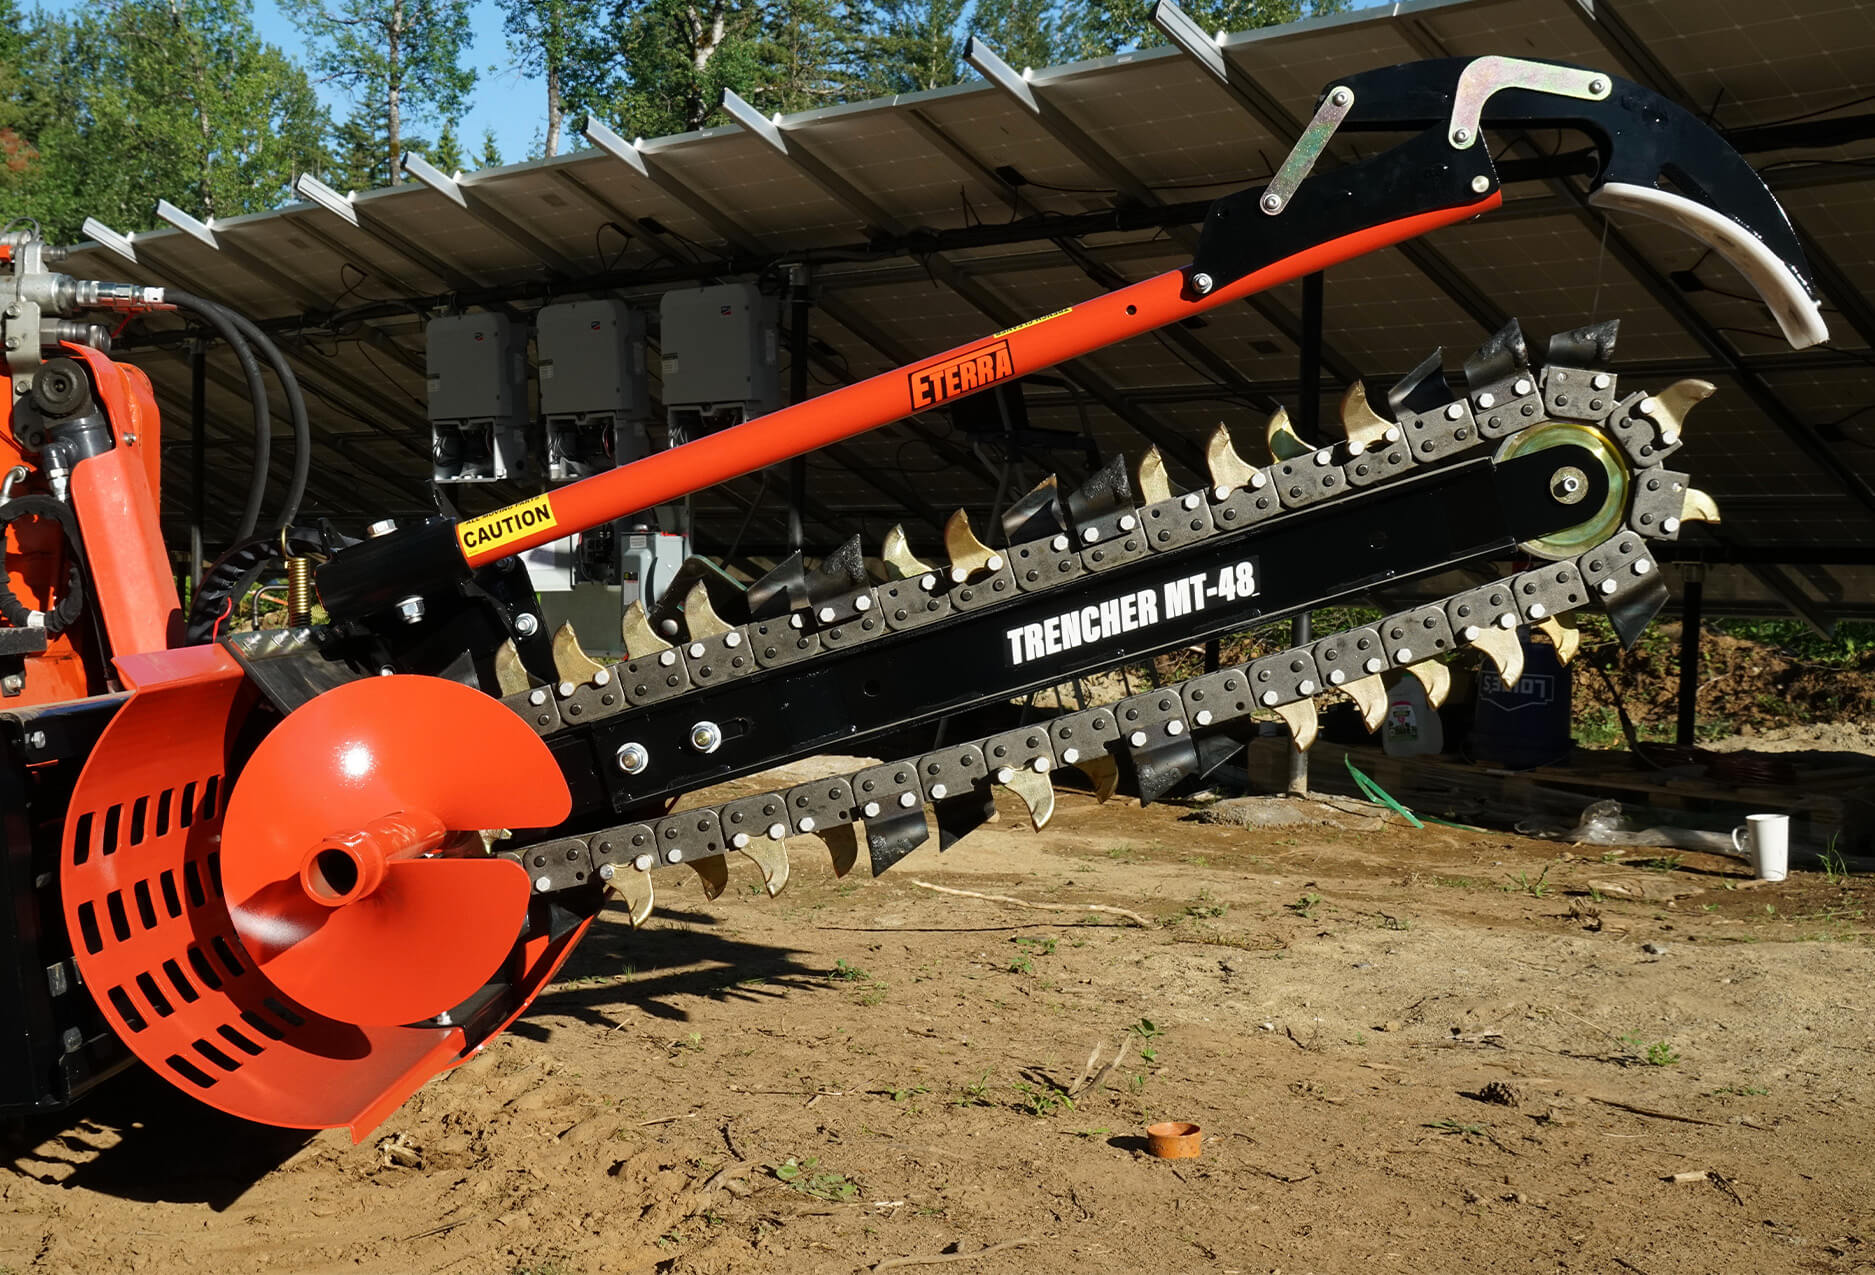 Side angle view of the skid steer trencher attachment.